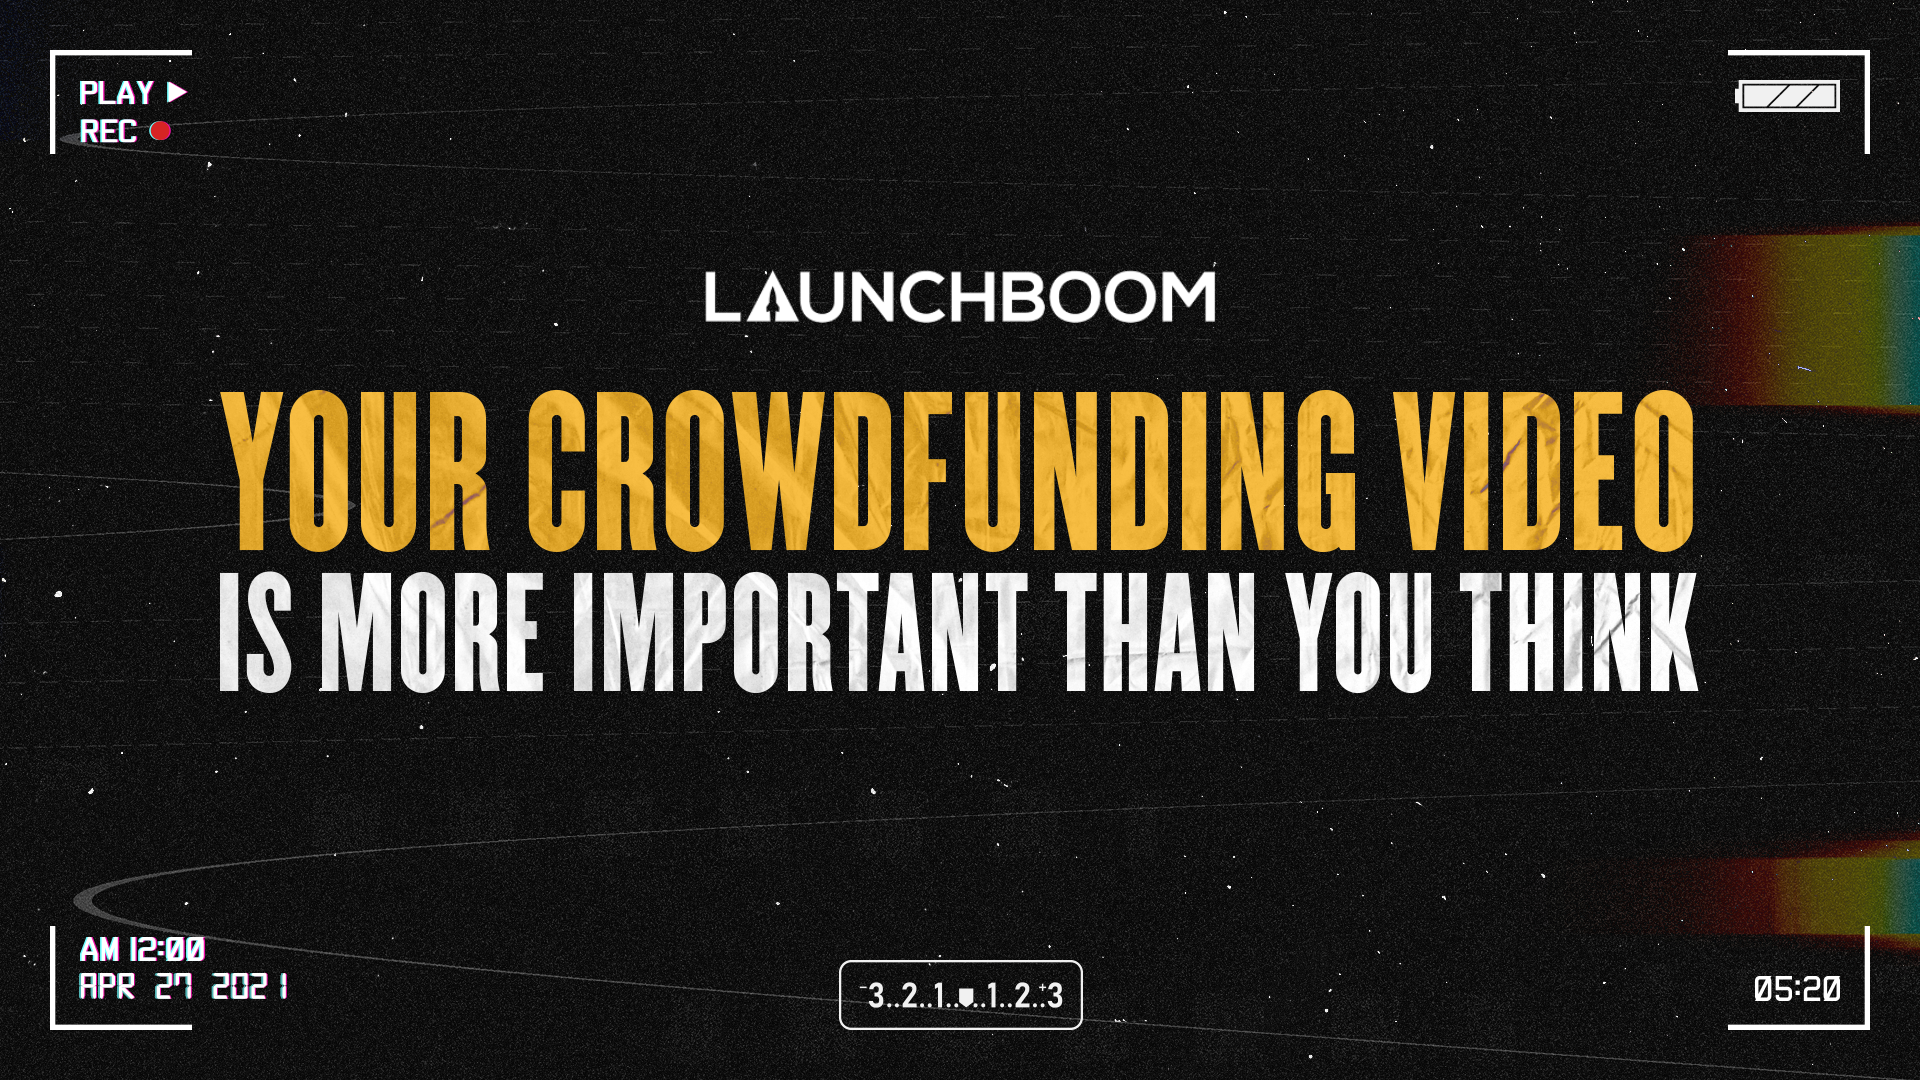 Your crowdfunding video is more important than you think